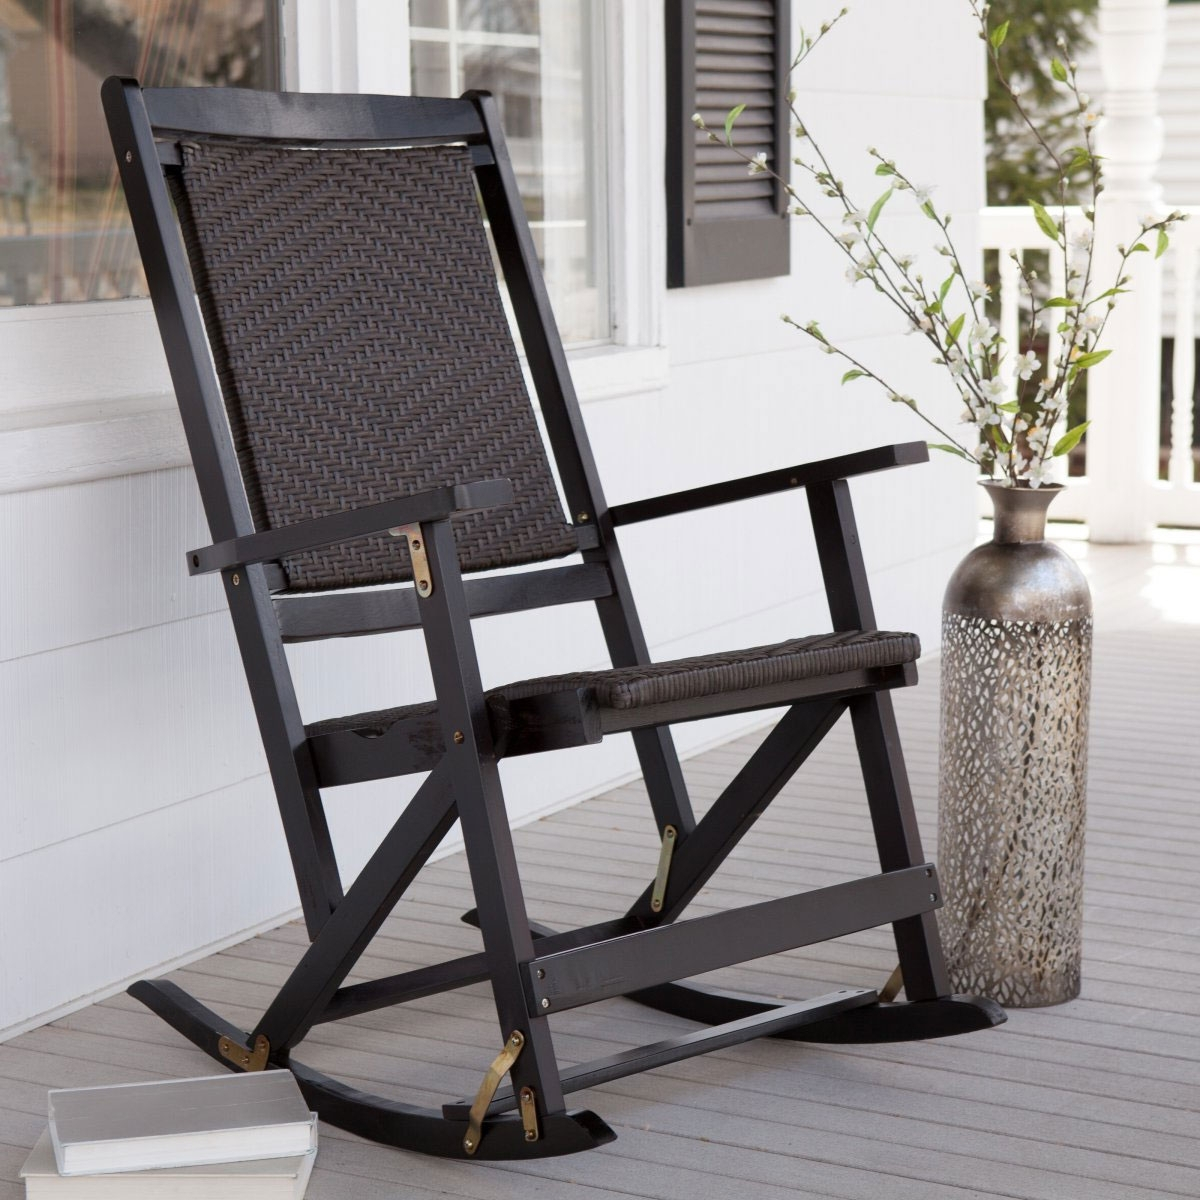 Outdoor Metal Rocking Chair Modern Chairs Quality Interior Lawn In Famous Vintage Metal Rocking Patio Chairs (View 8 of 15)